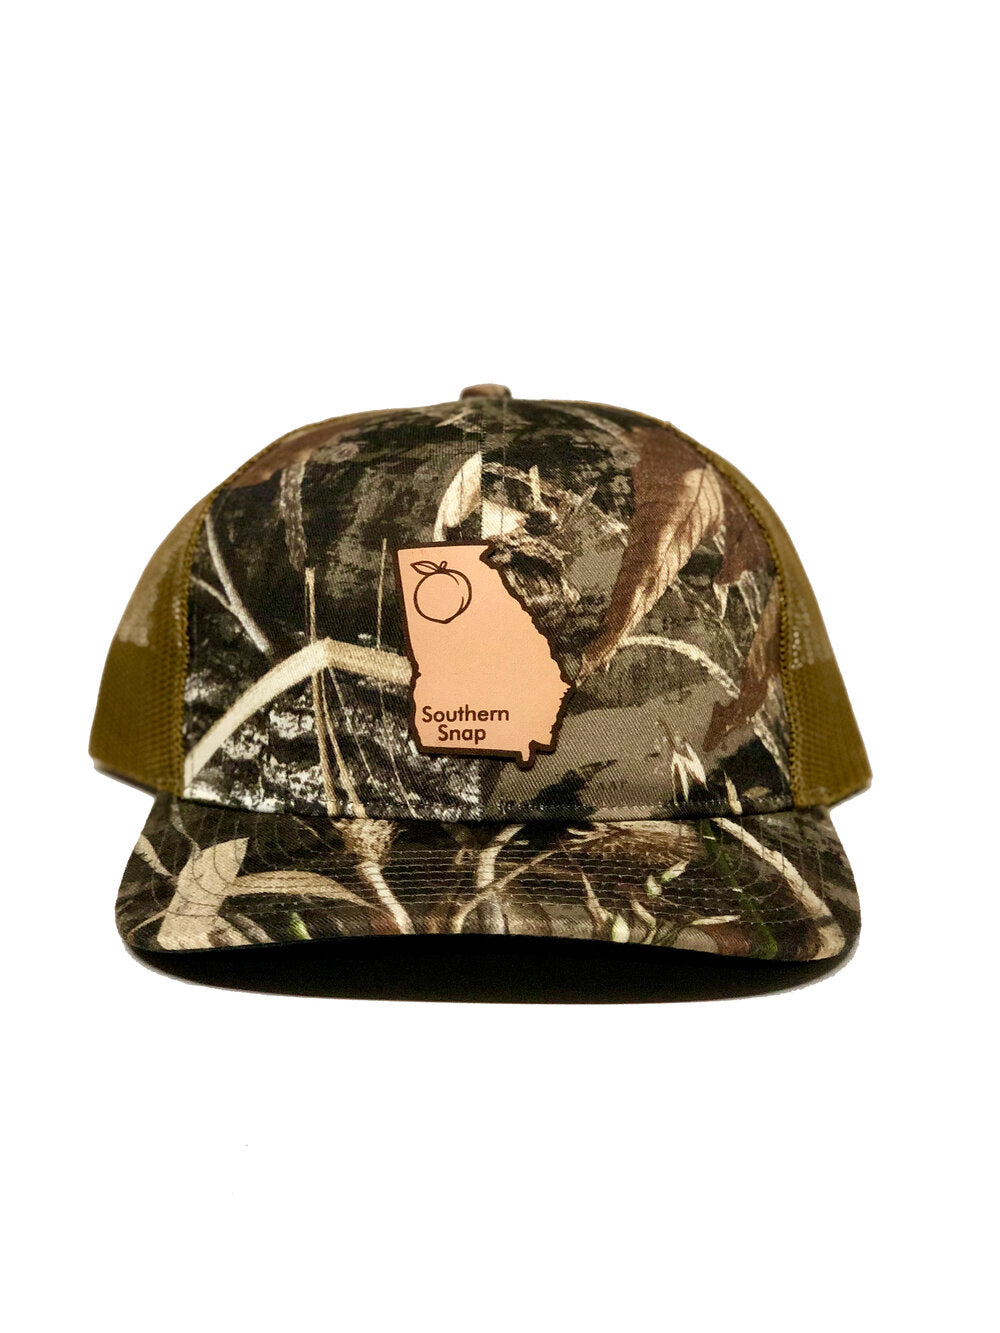 Georgia Leather Patch Trucker Hat Camo